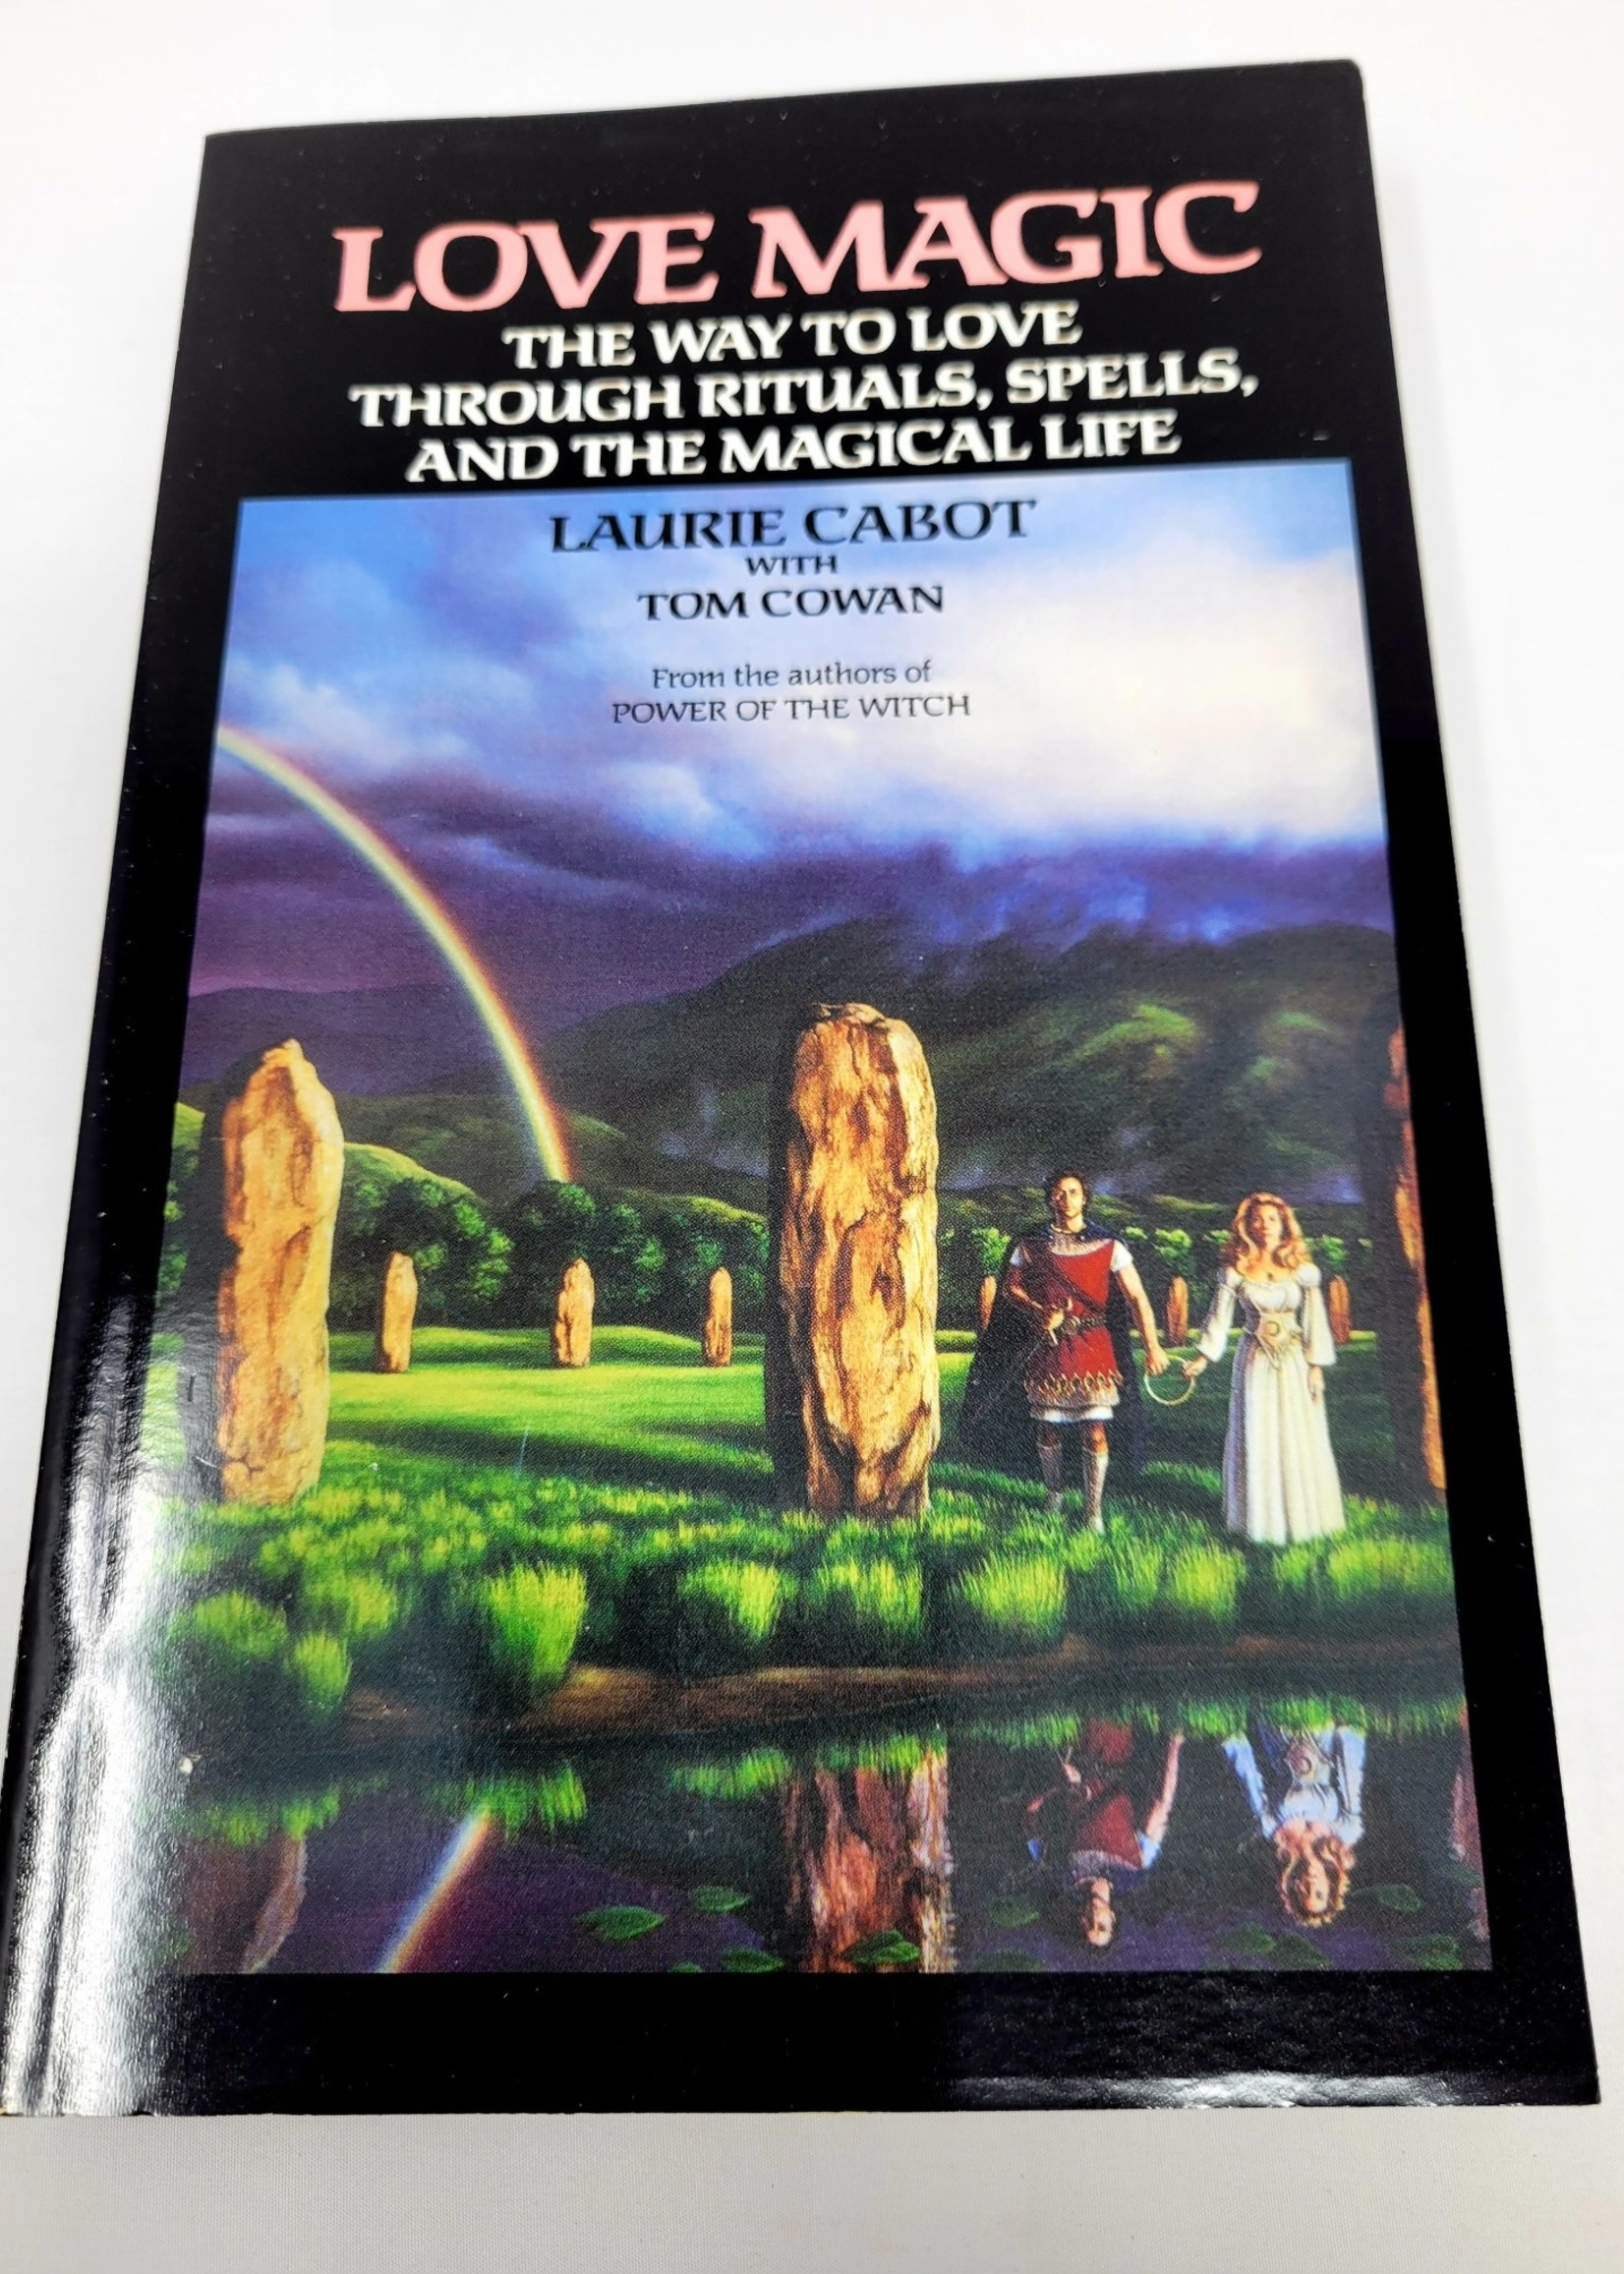 Love Magic THE WAY TO LOVE THROUGH RITUALS, SPELLS, AND THE MAGICAL LIFE - By LAURIE CABOT Contribution by Tom Cowan